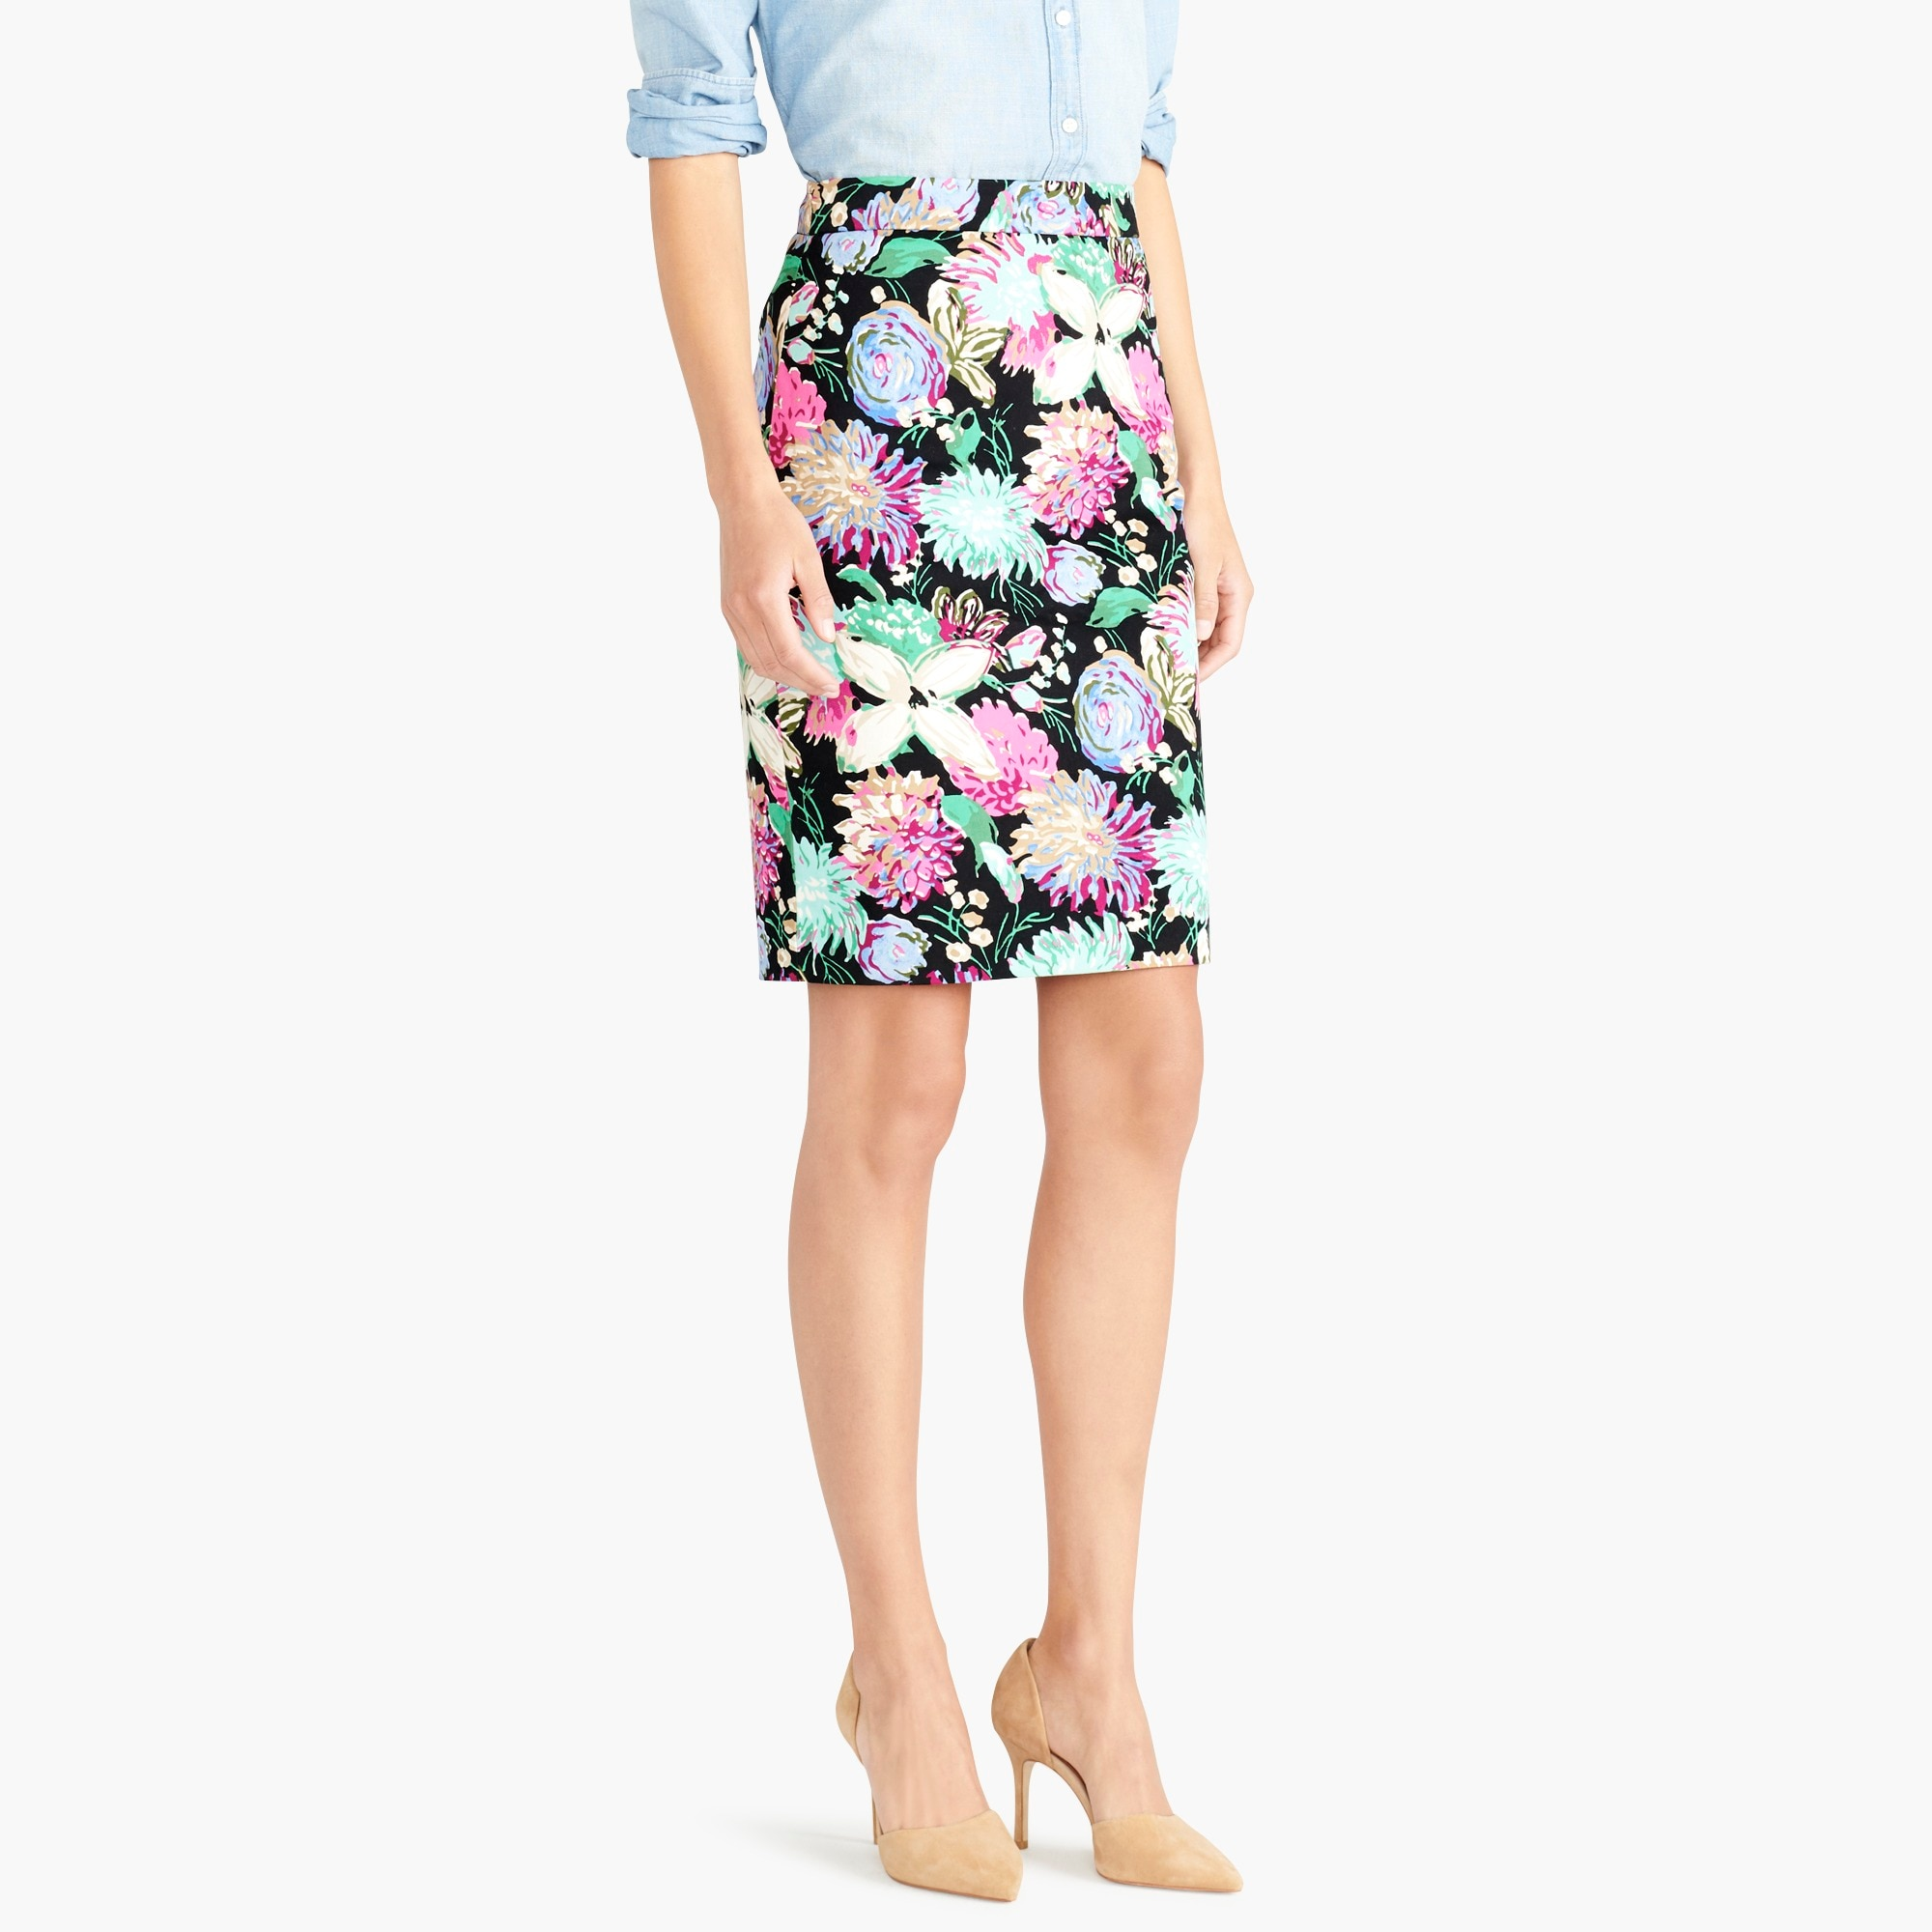 Image 1 for Printed stretch cotton sateen pencil skirt